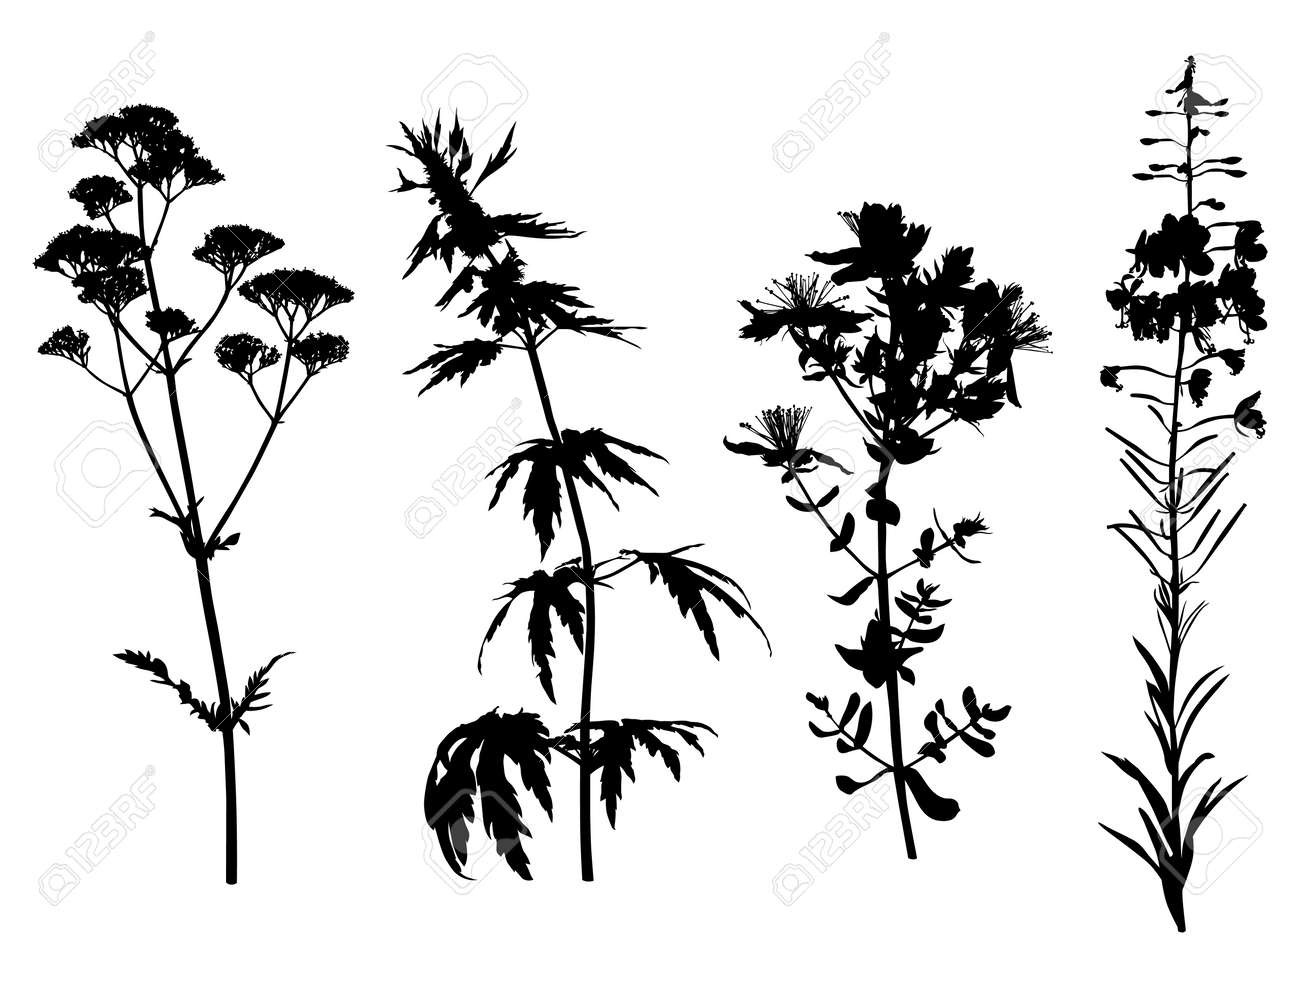 Line Drawing Flower Vector : Vector illustrations of medicinal herbals flower silhouette set